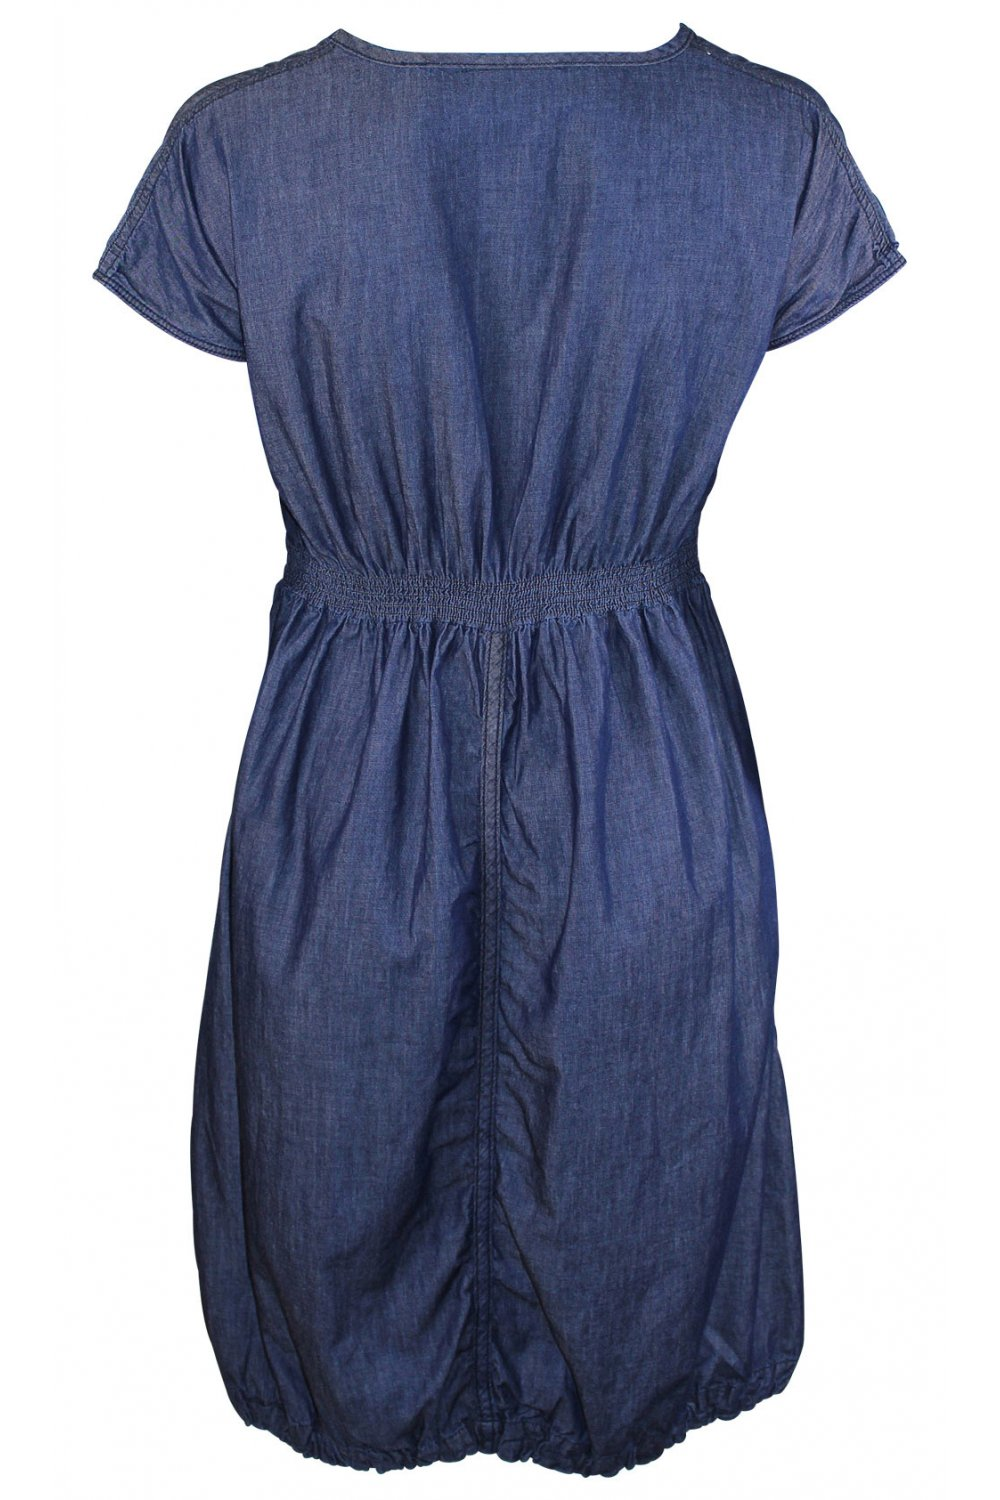 Ofra Round Necked Sleeveless Fitted Dress From The Masai